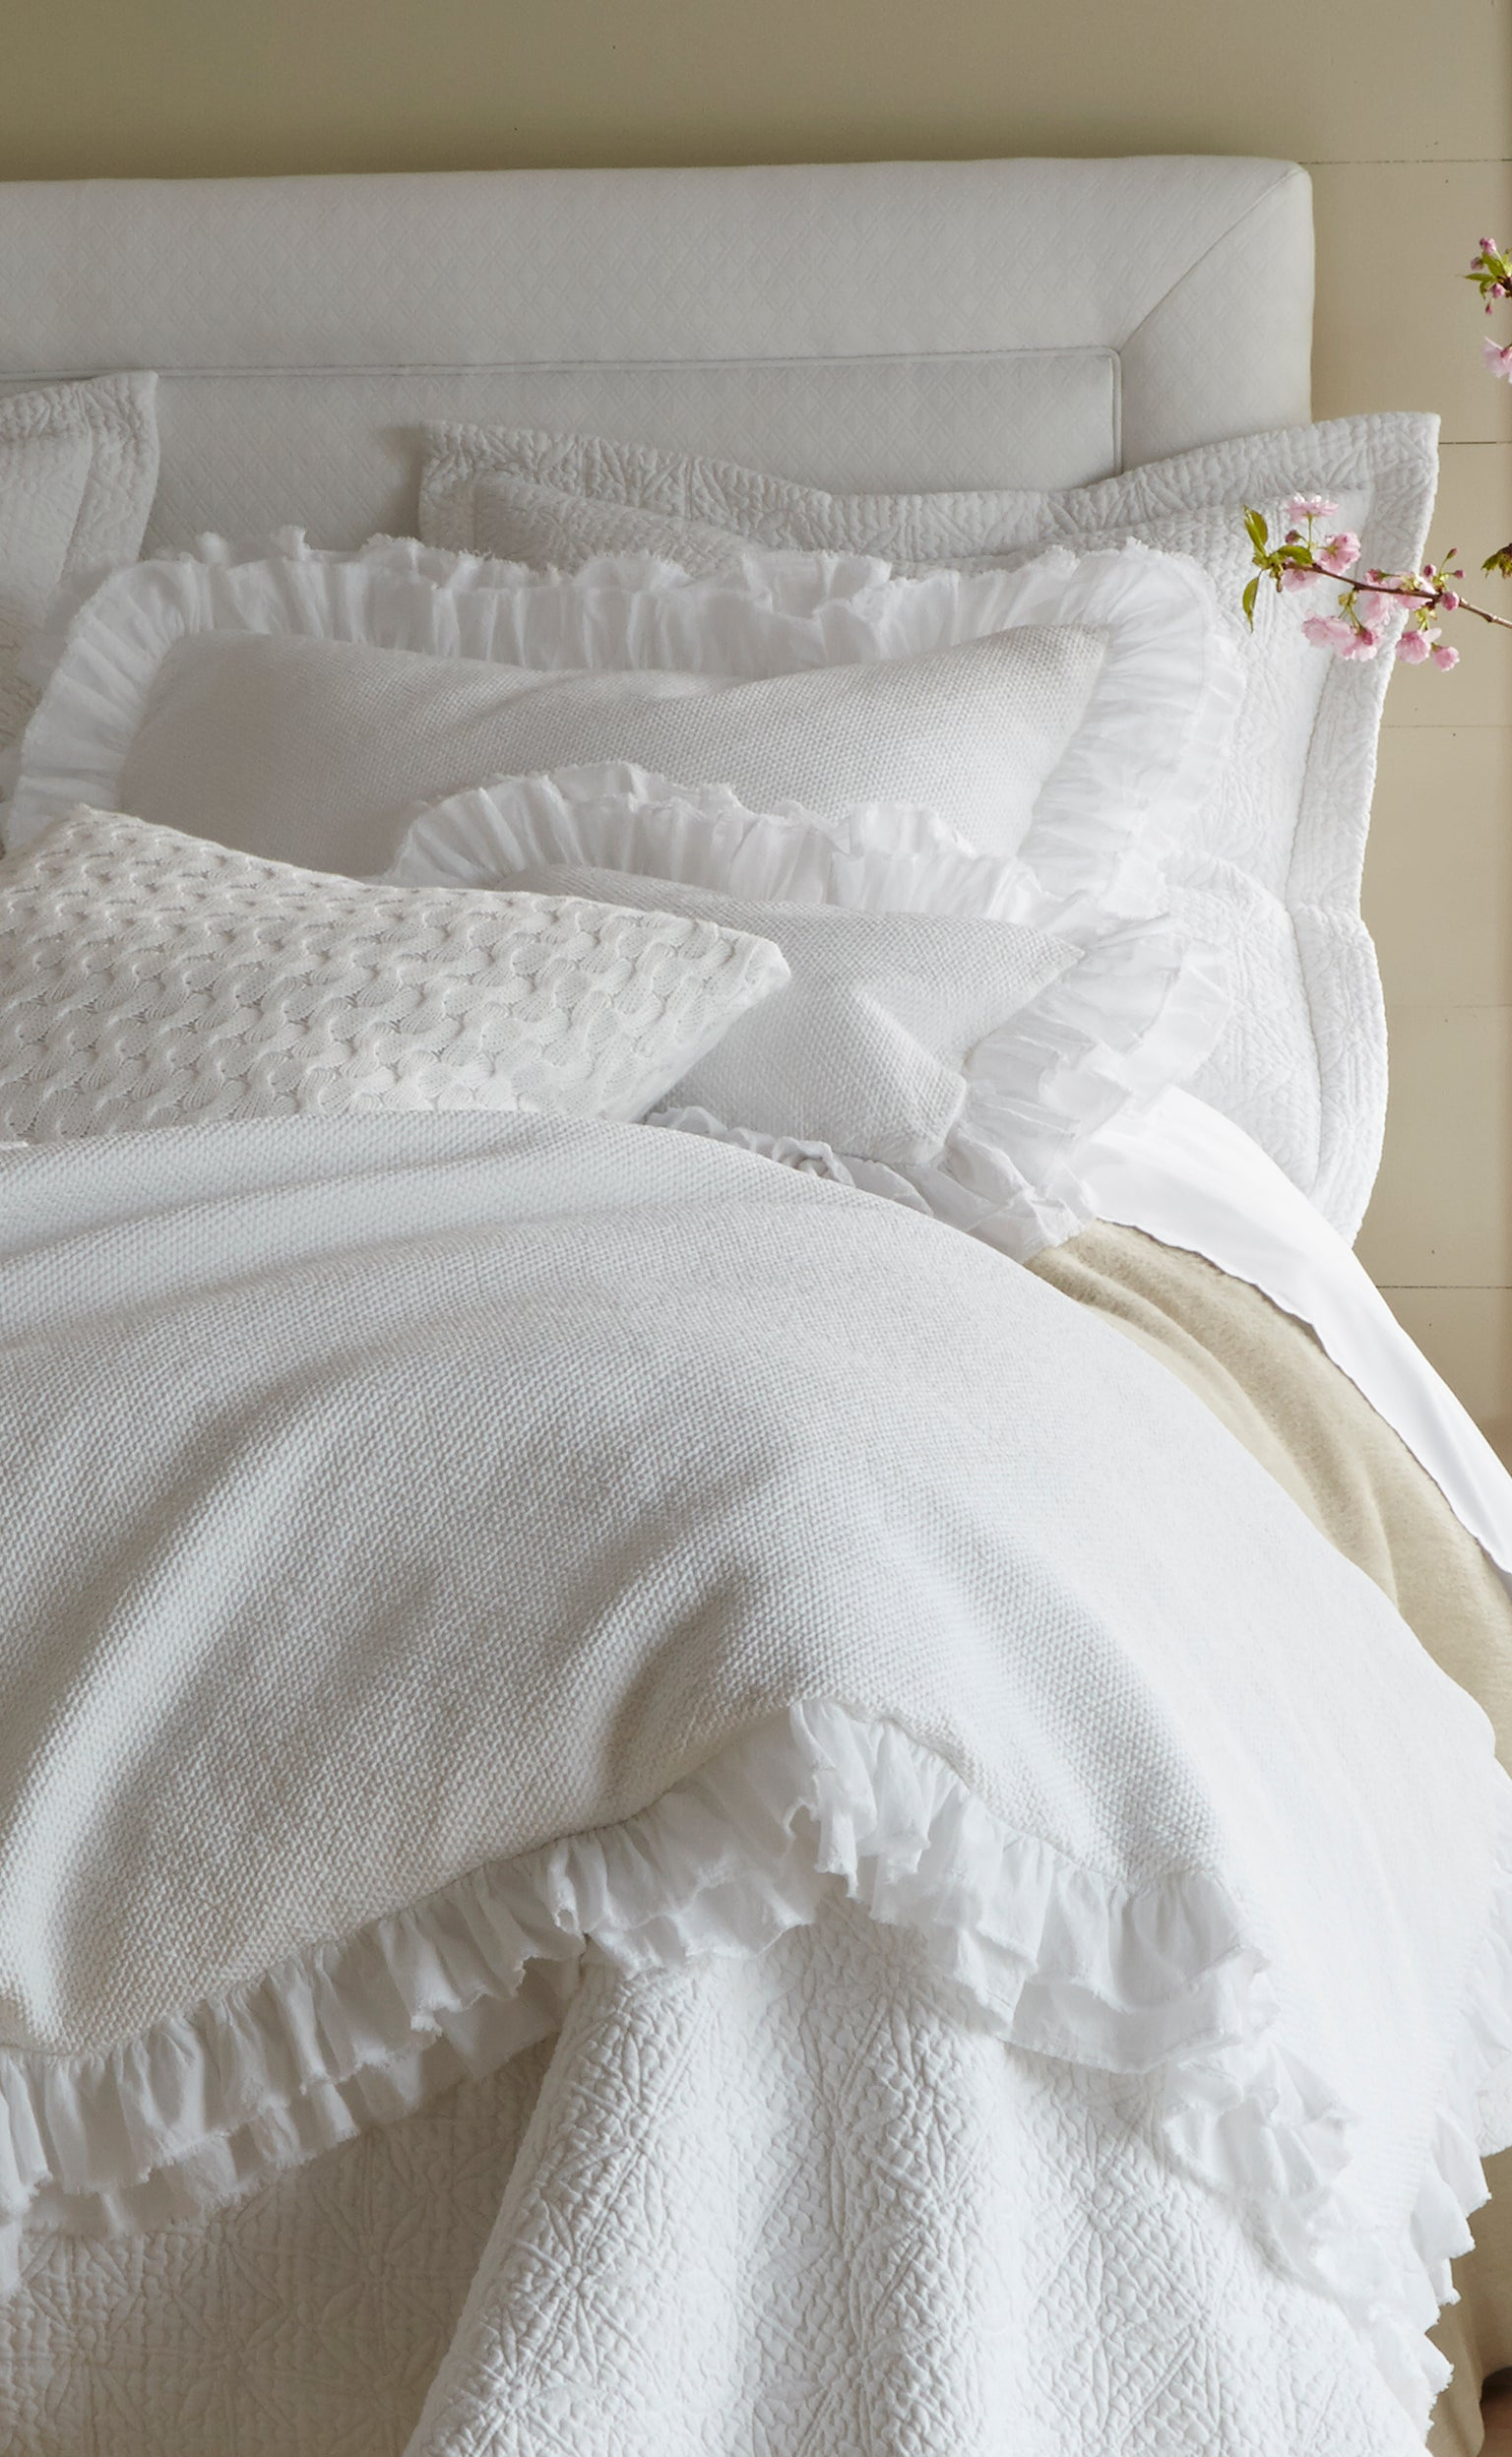 White layered bedding for chilly winter nights, with ruffles and matelassé accents